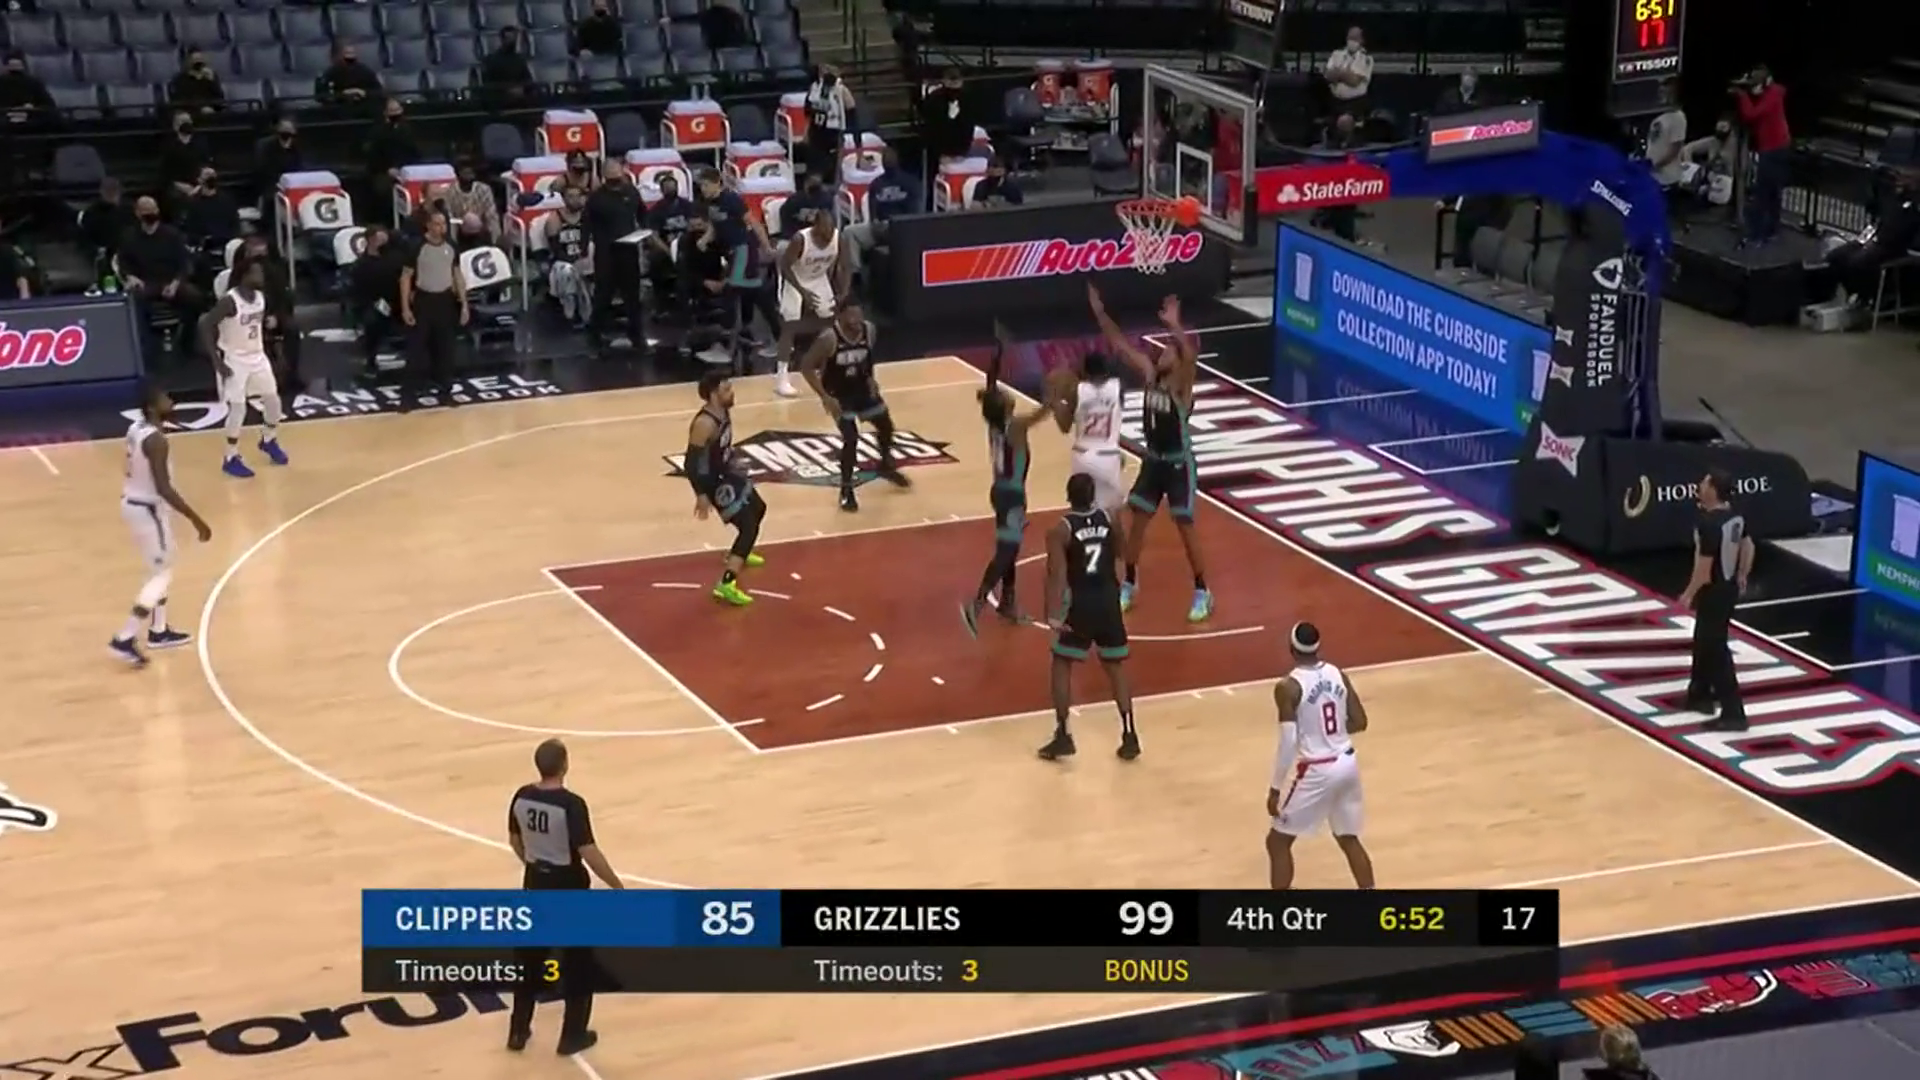 Grizzlies vs. Clippers highlights 2.25.21